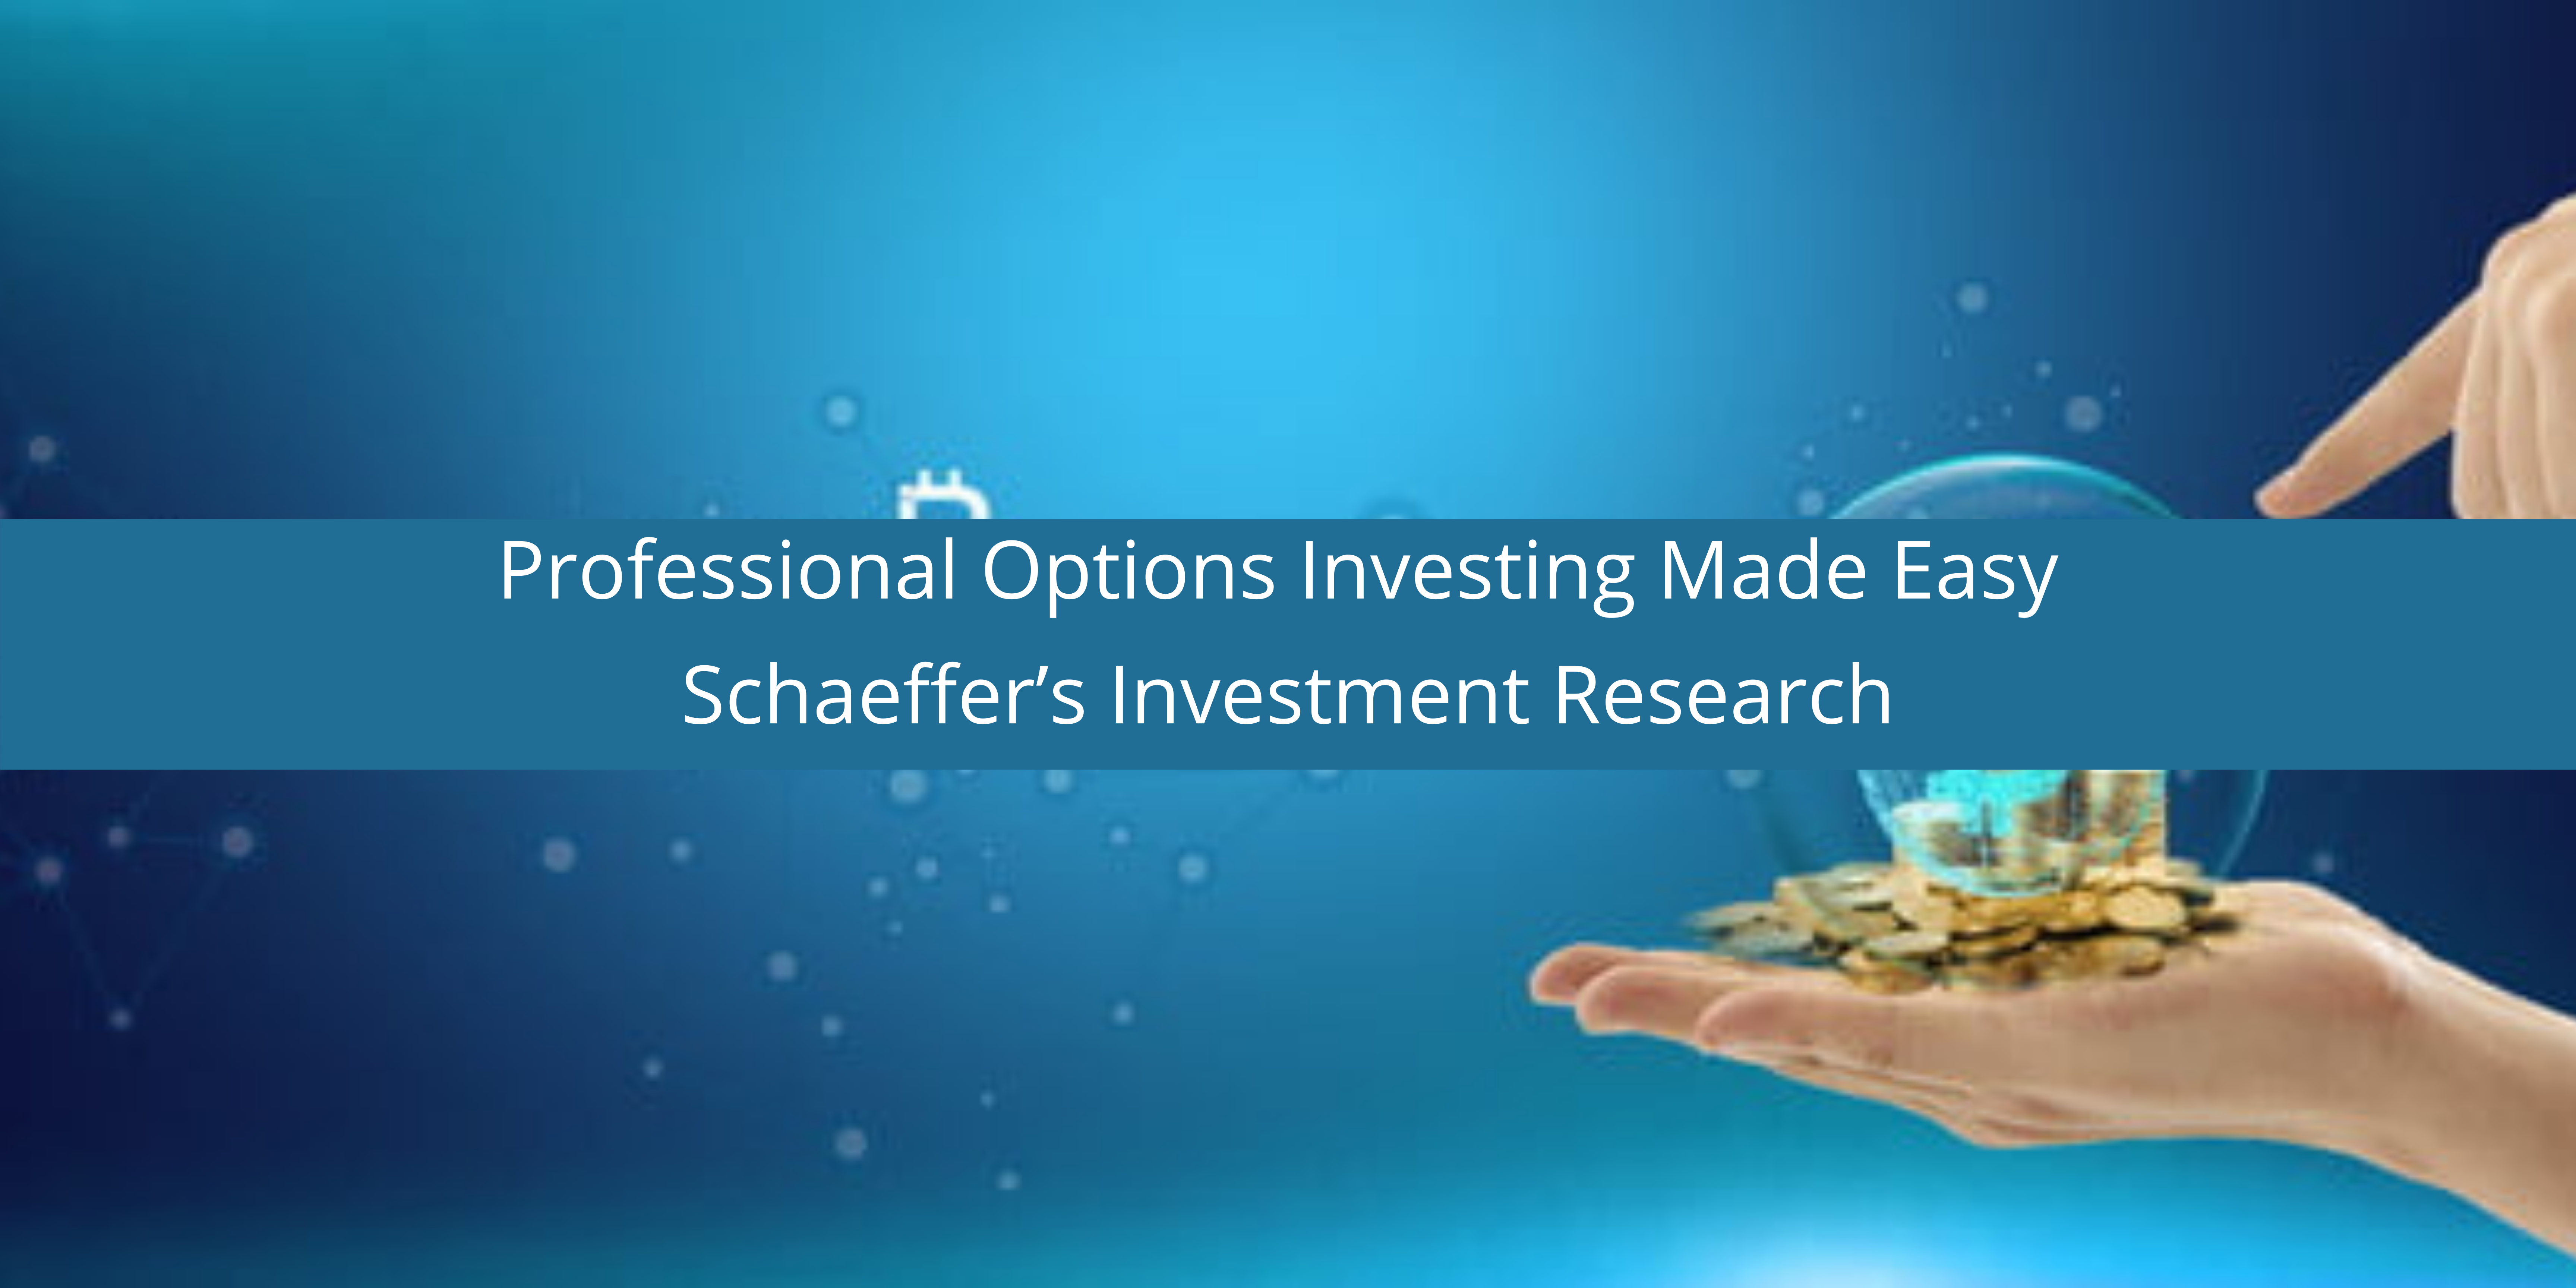 Schaeffer's Investment Research Review: Professional Options Investing Made Easy